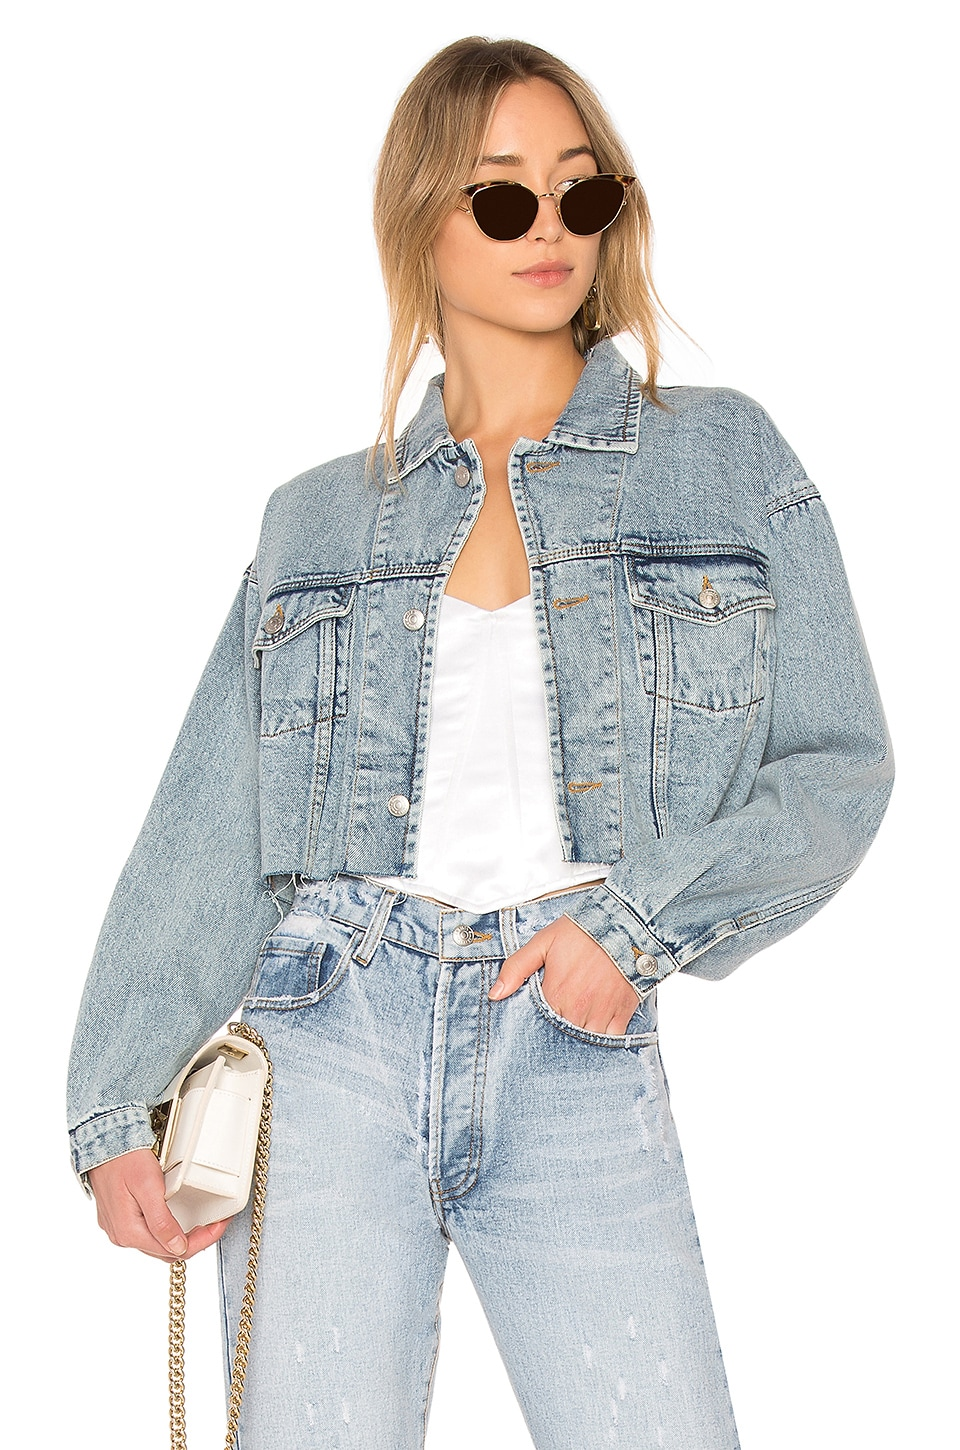 Palmer Girls x Miss Sixty Vintage Cropped Denim Jacket in Light Wash